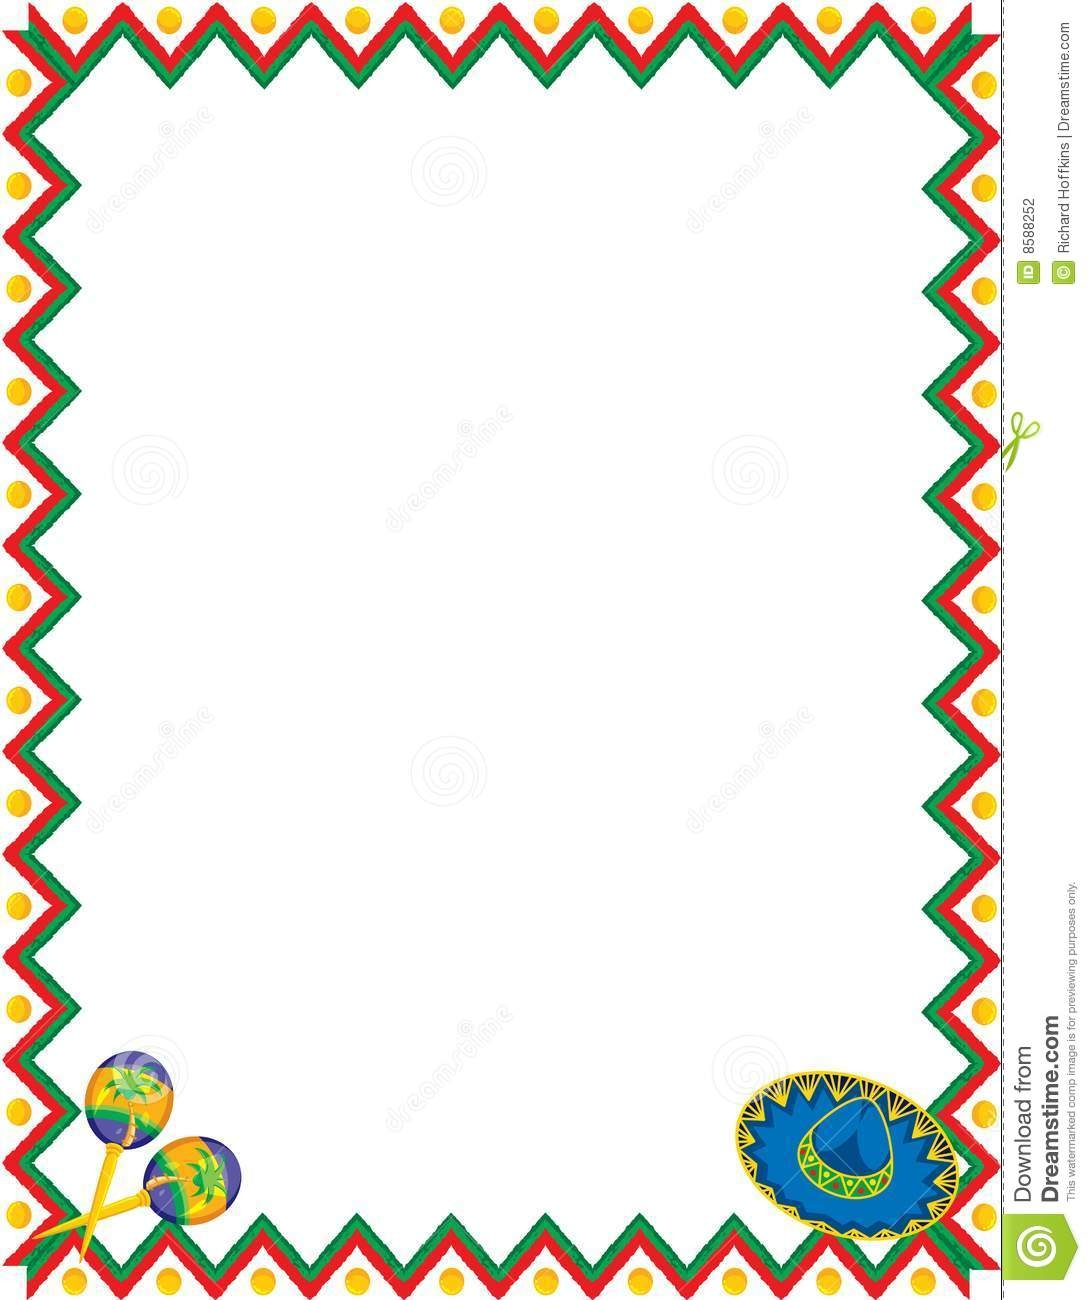 Frame clipart mexican Clipartsgram Themed Clipart Mexican Photo: